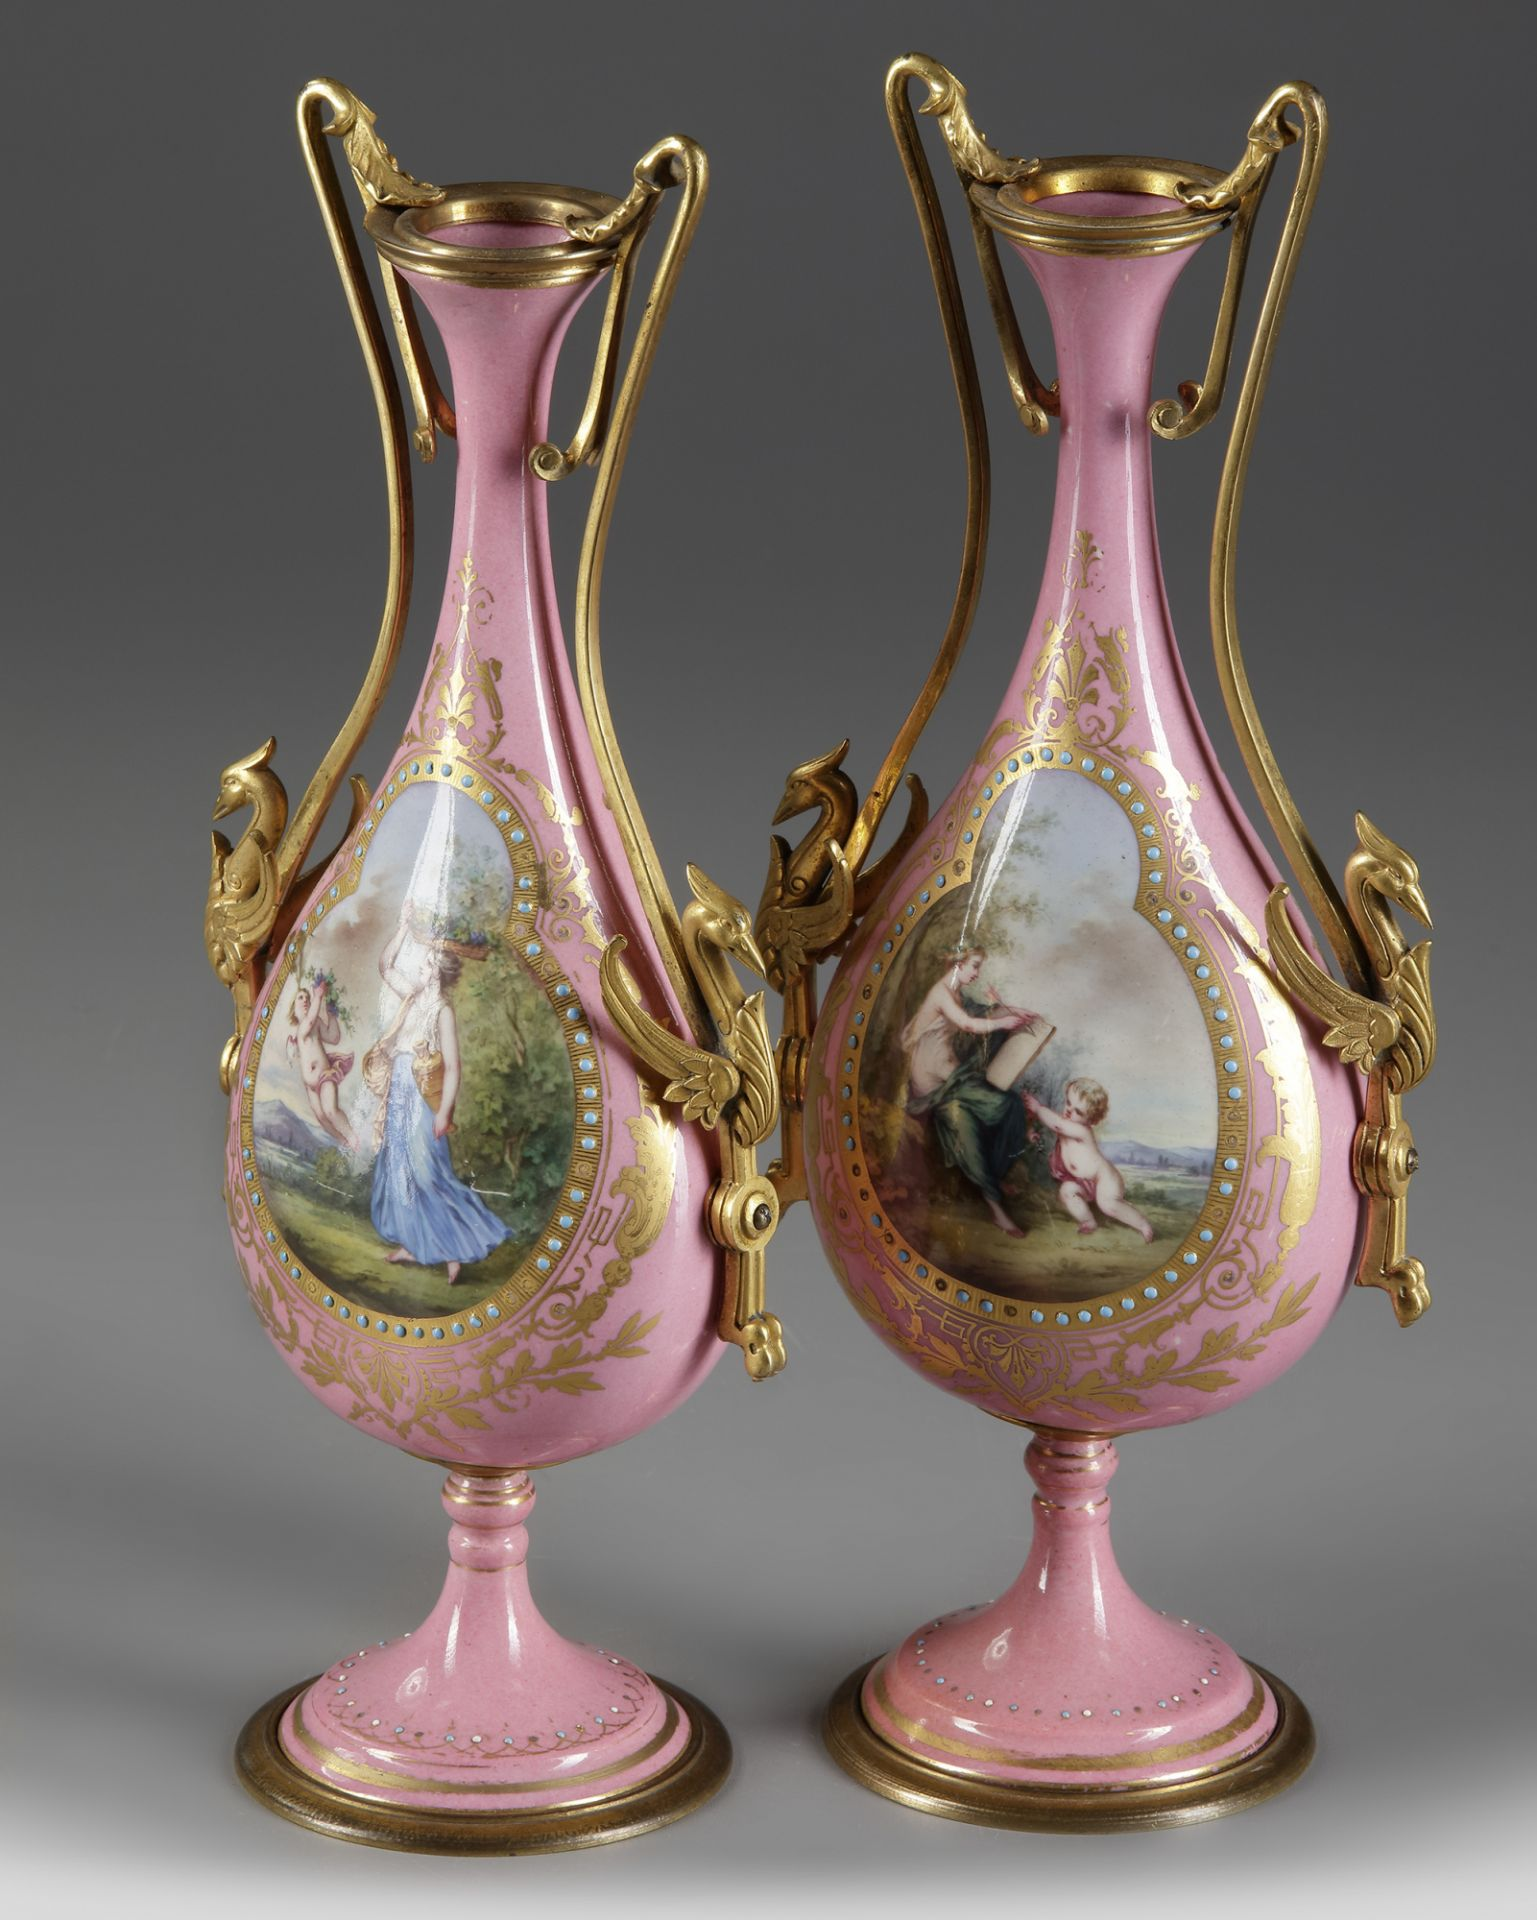 A PAIR OF FRENCH PINK SEVRES VASES, LATE 19TH CENTURY - Image 4 of 4